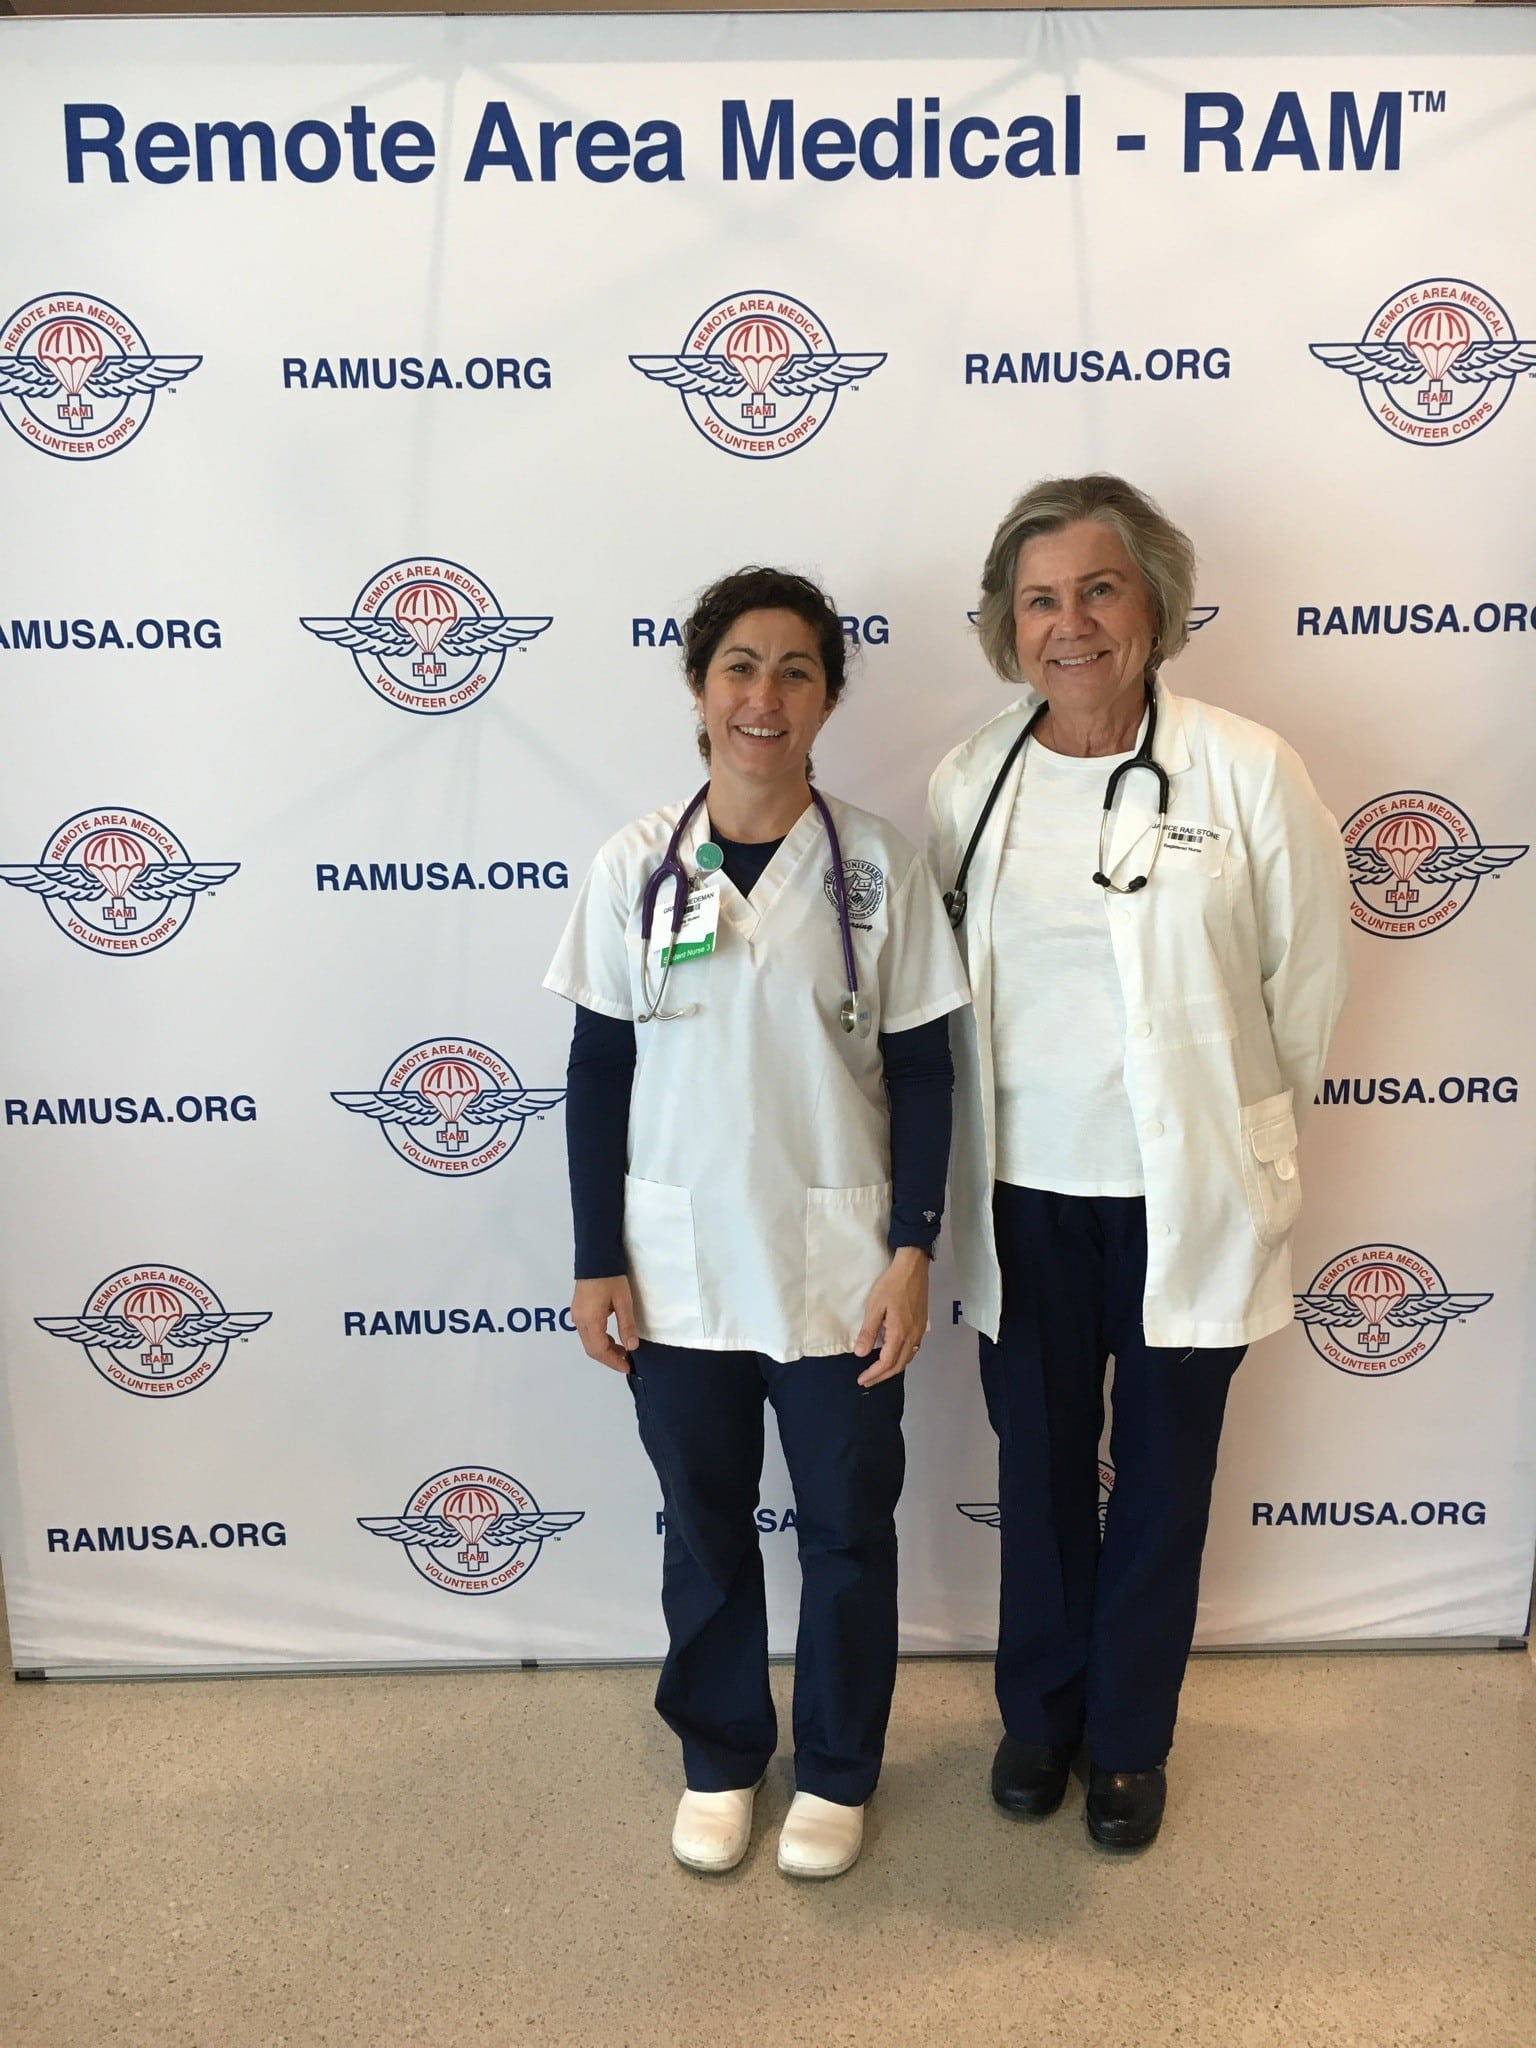 Sarasota Nursing Helped with Remote Area Medical